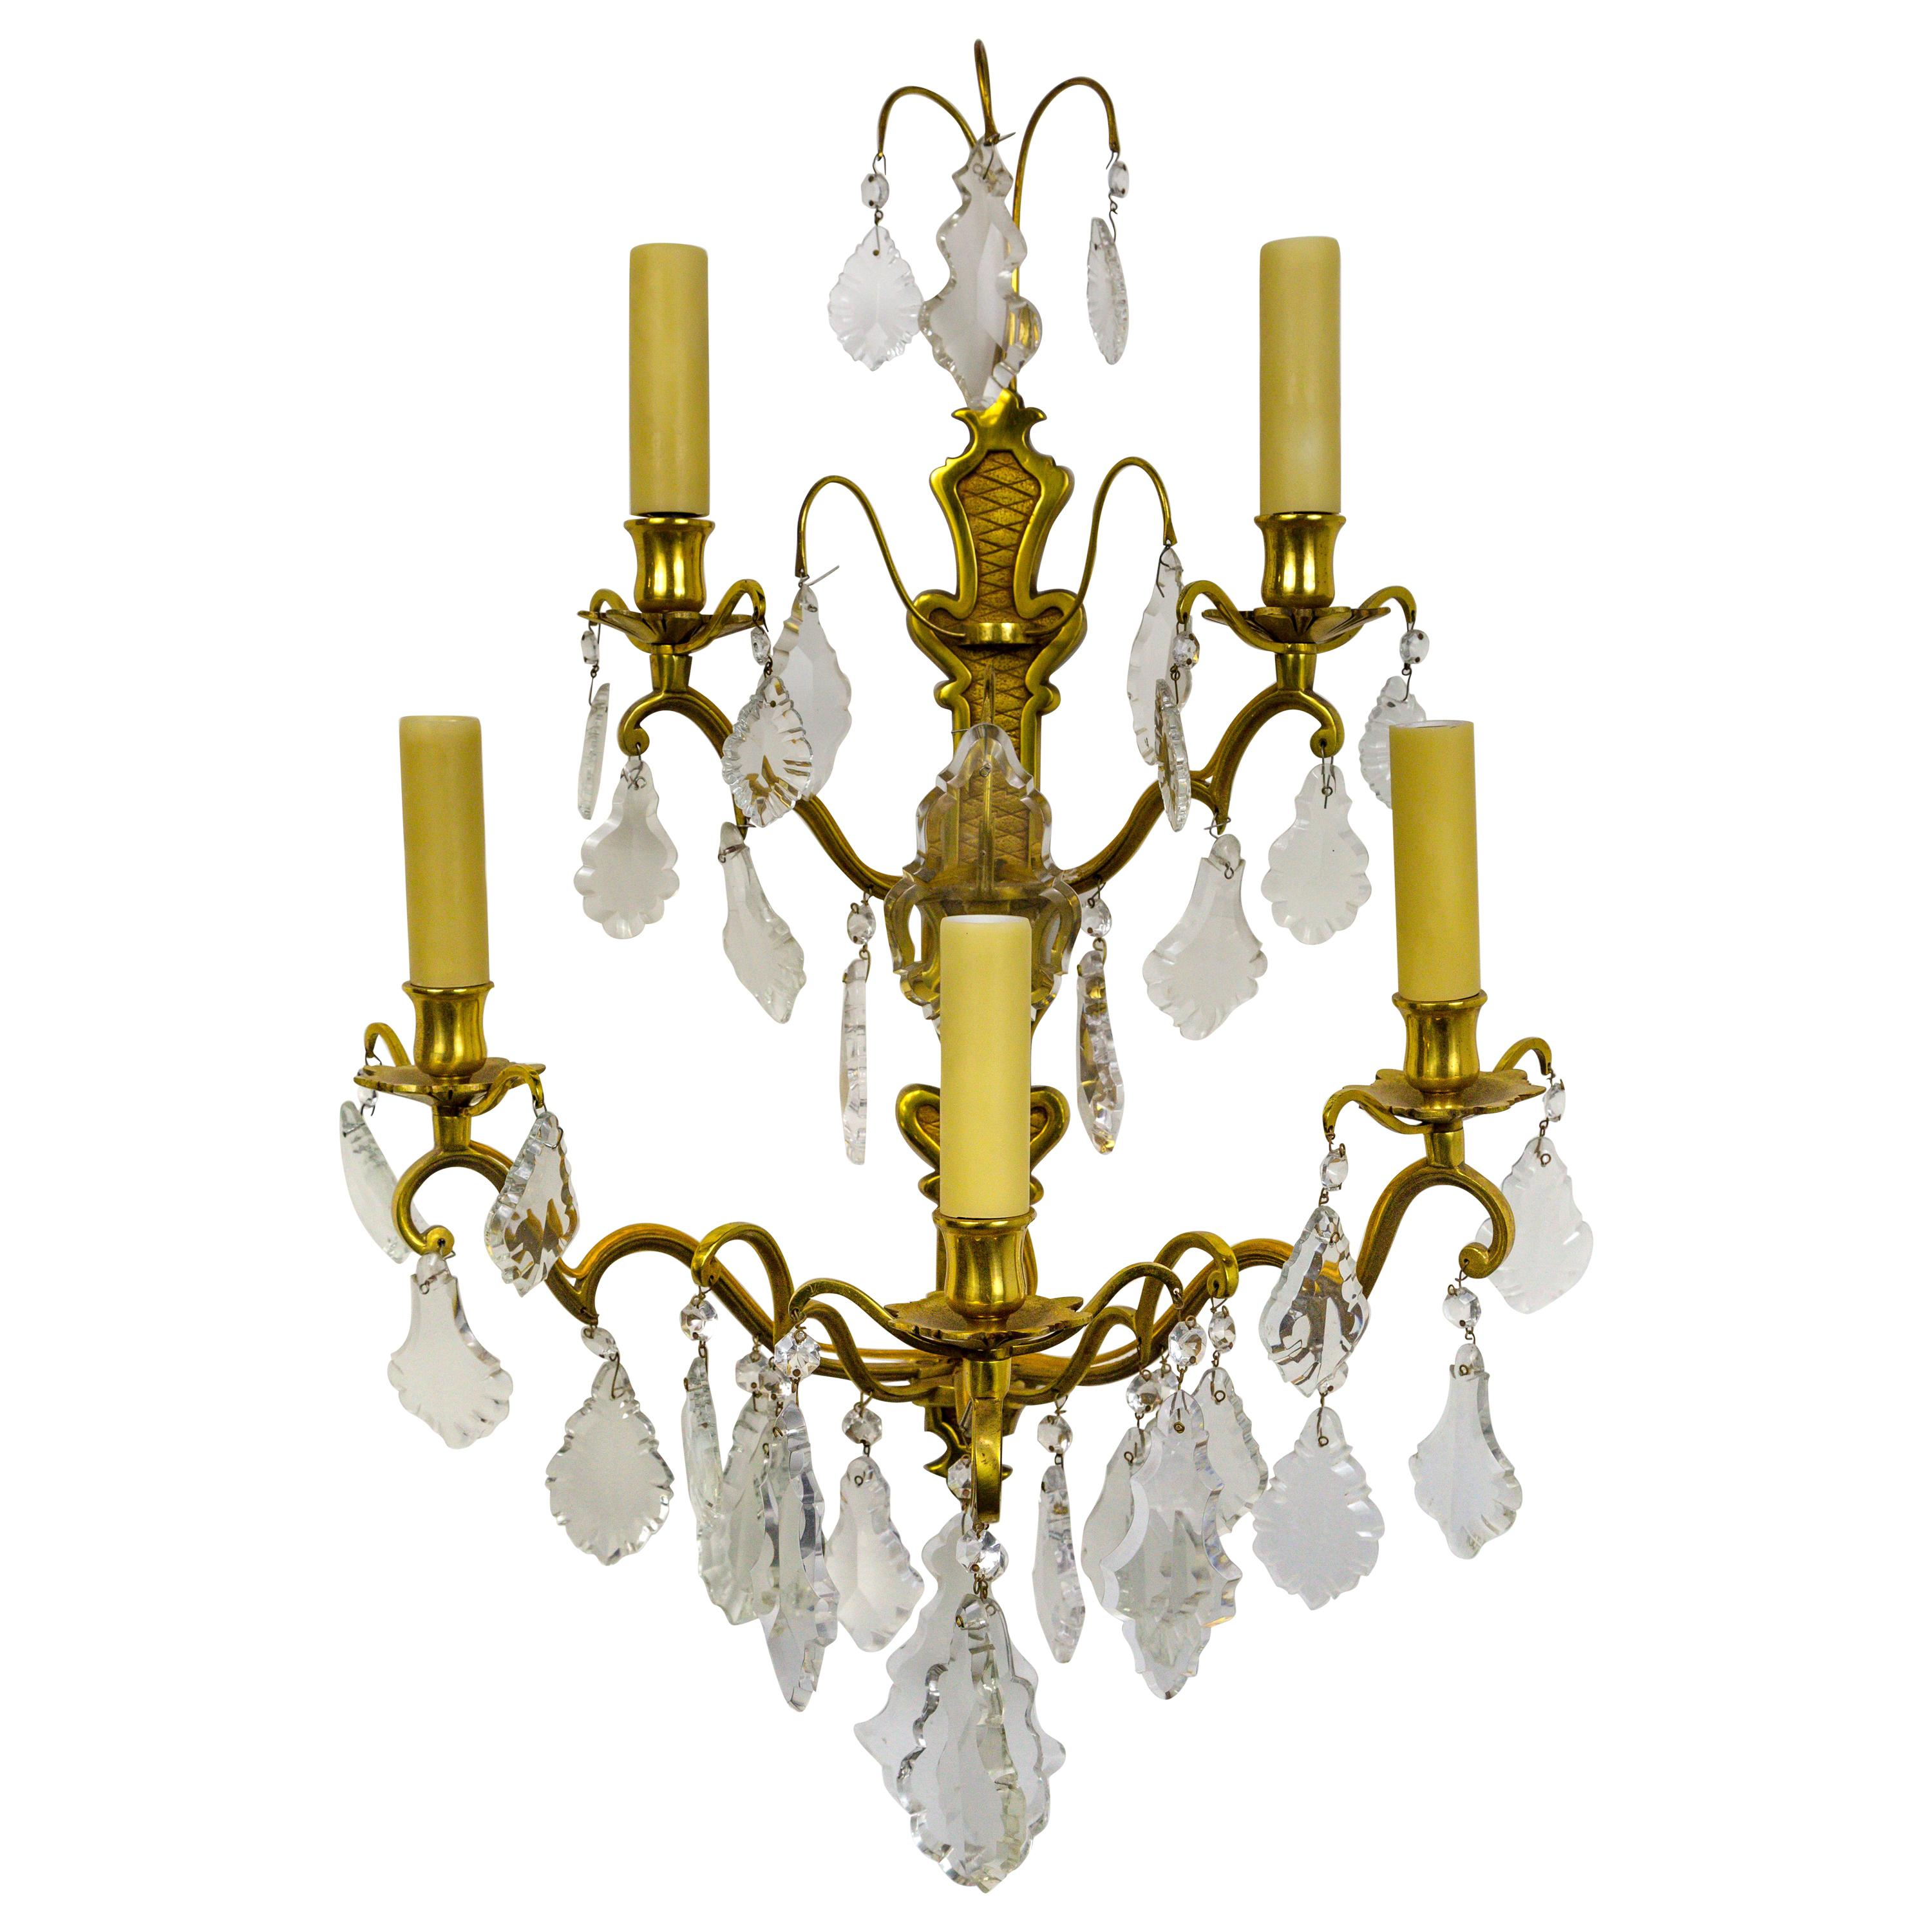 French Double Tier Crystal Candelabra Sconce